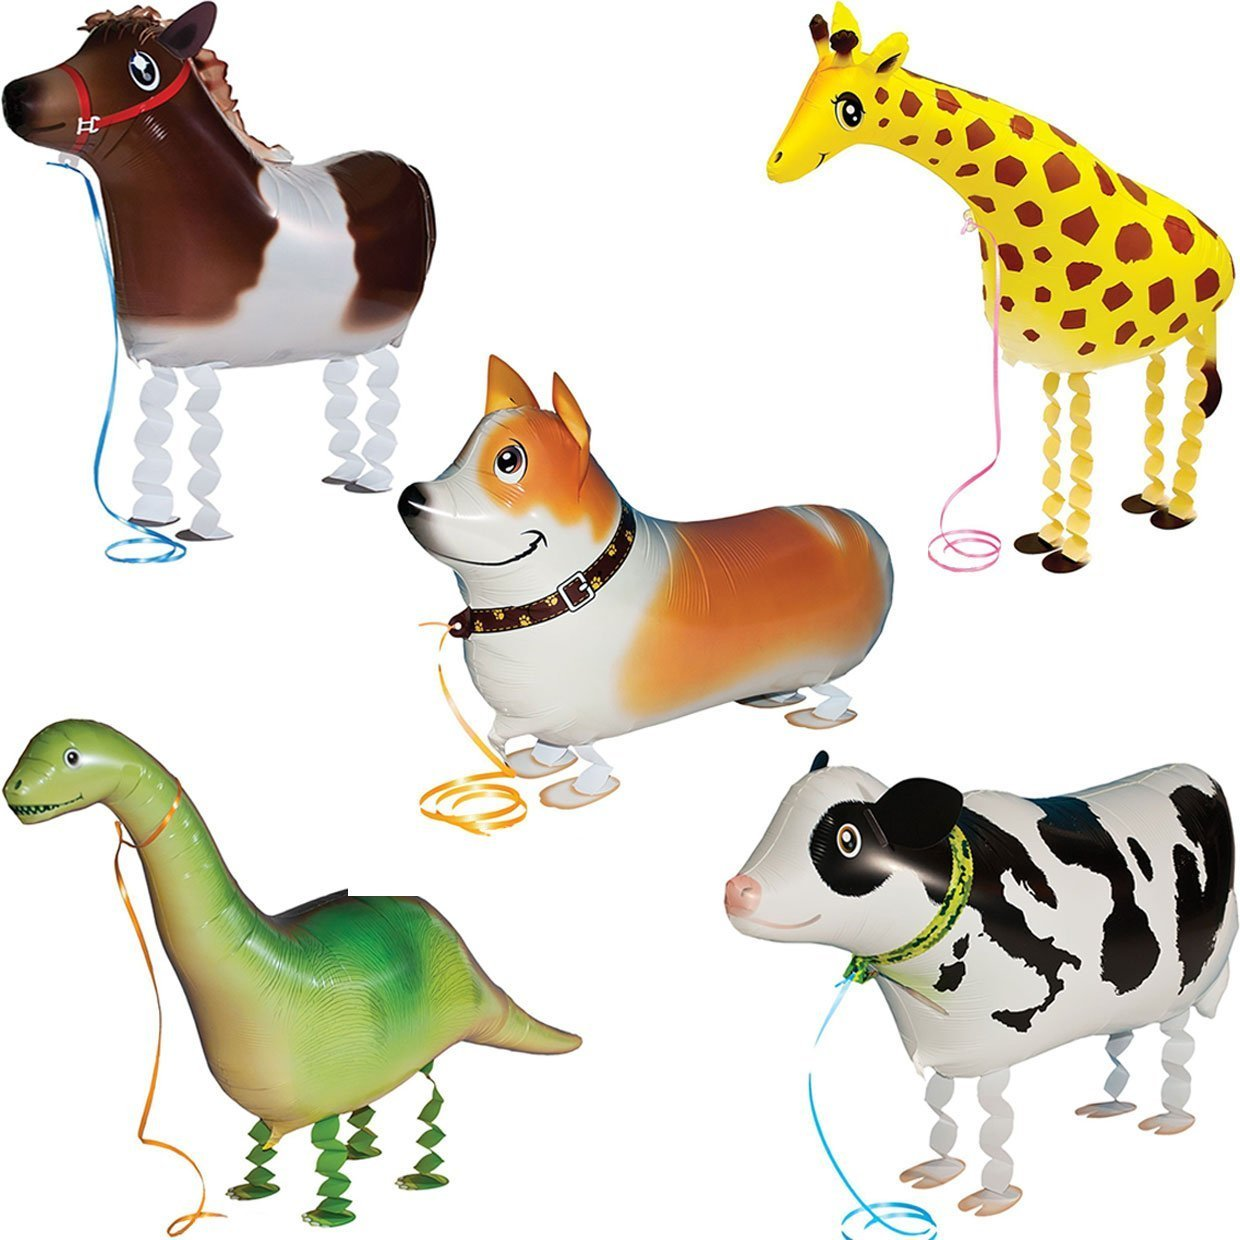 5pcs Walking Pet Animal Balloons Kids toys Party Favors Gifts for Girls Air Walker group-F by Merveilleux (Image #2)